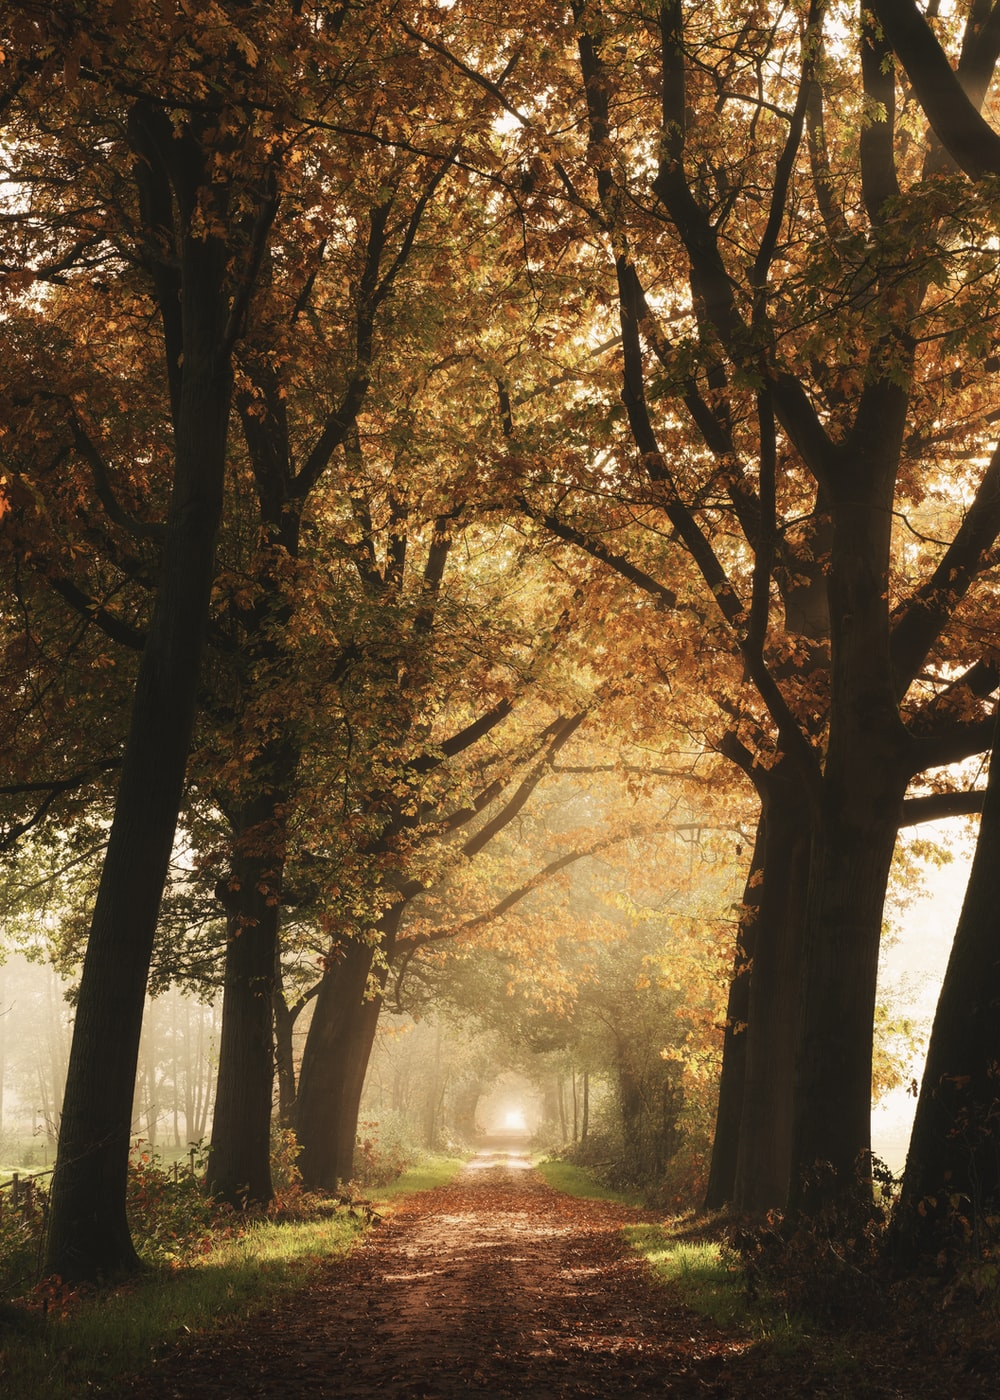 yellow leafed trees and pathway